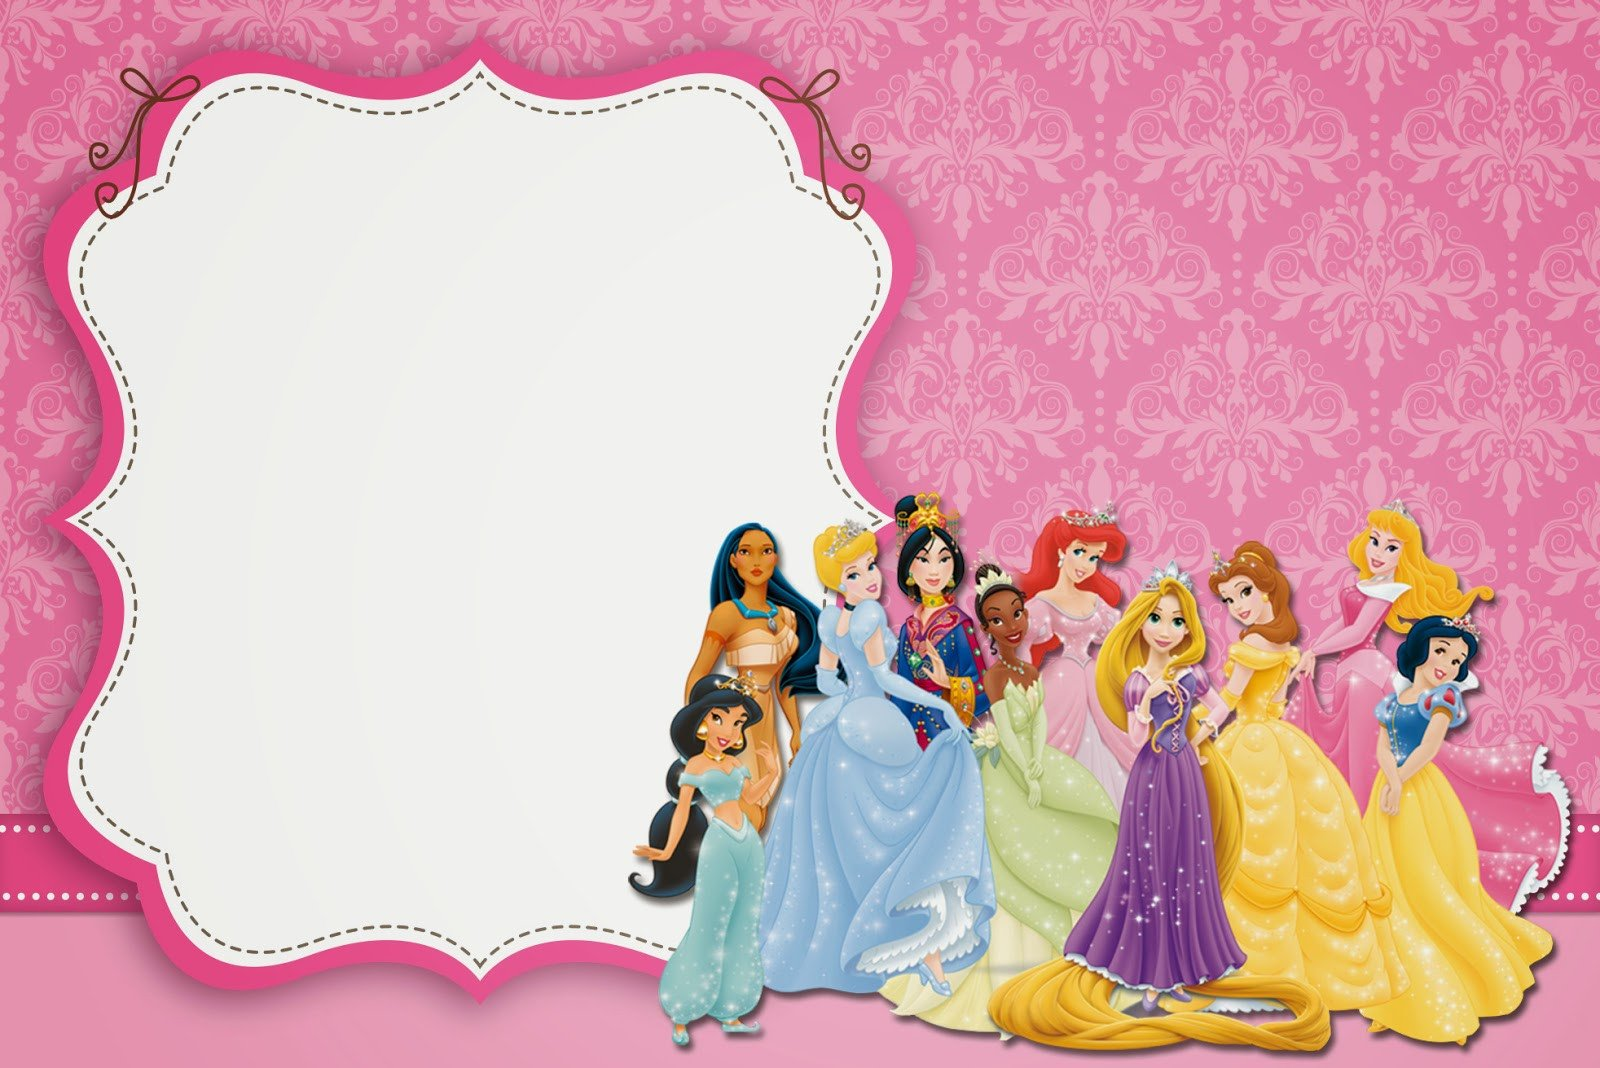 Disney Princess Invitation Template Disney Princess Party Free Printable Party Invitations